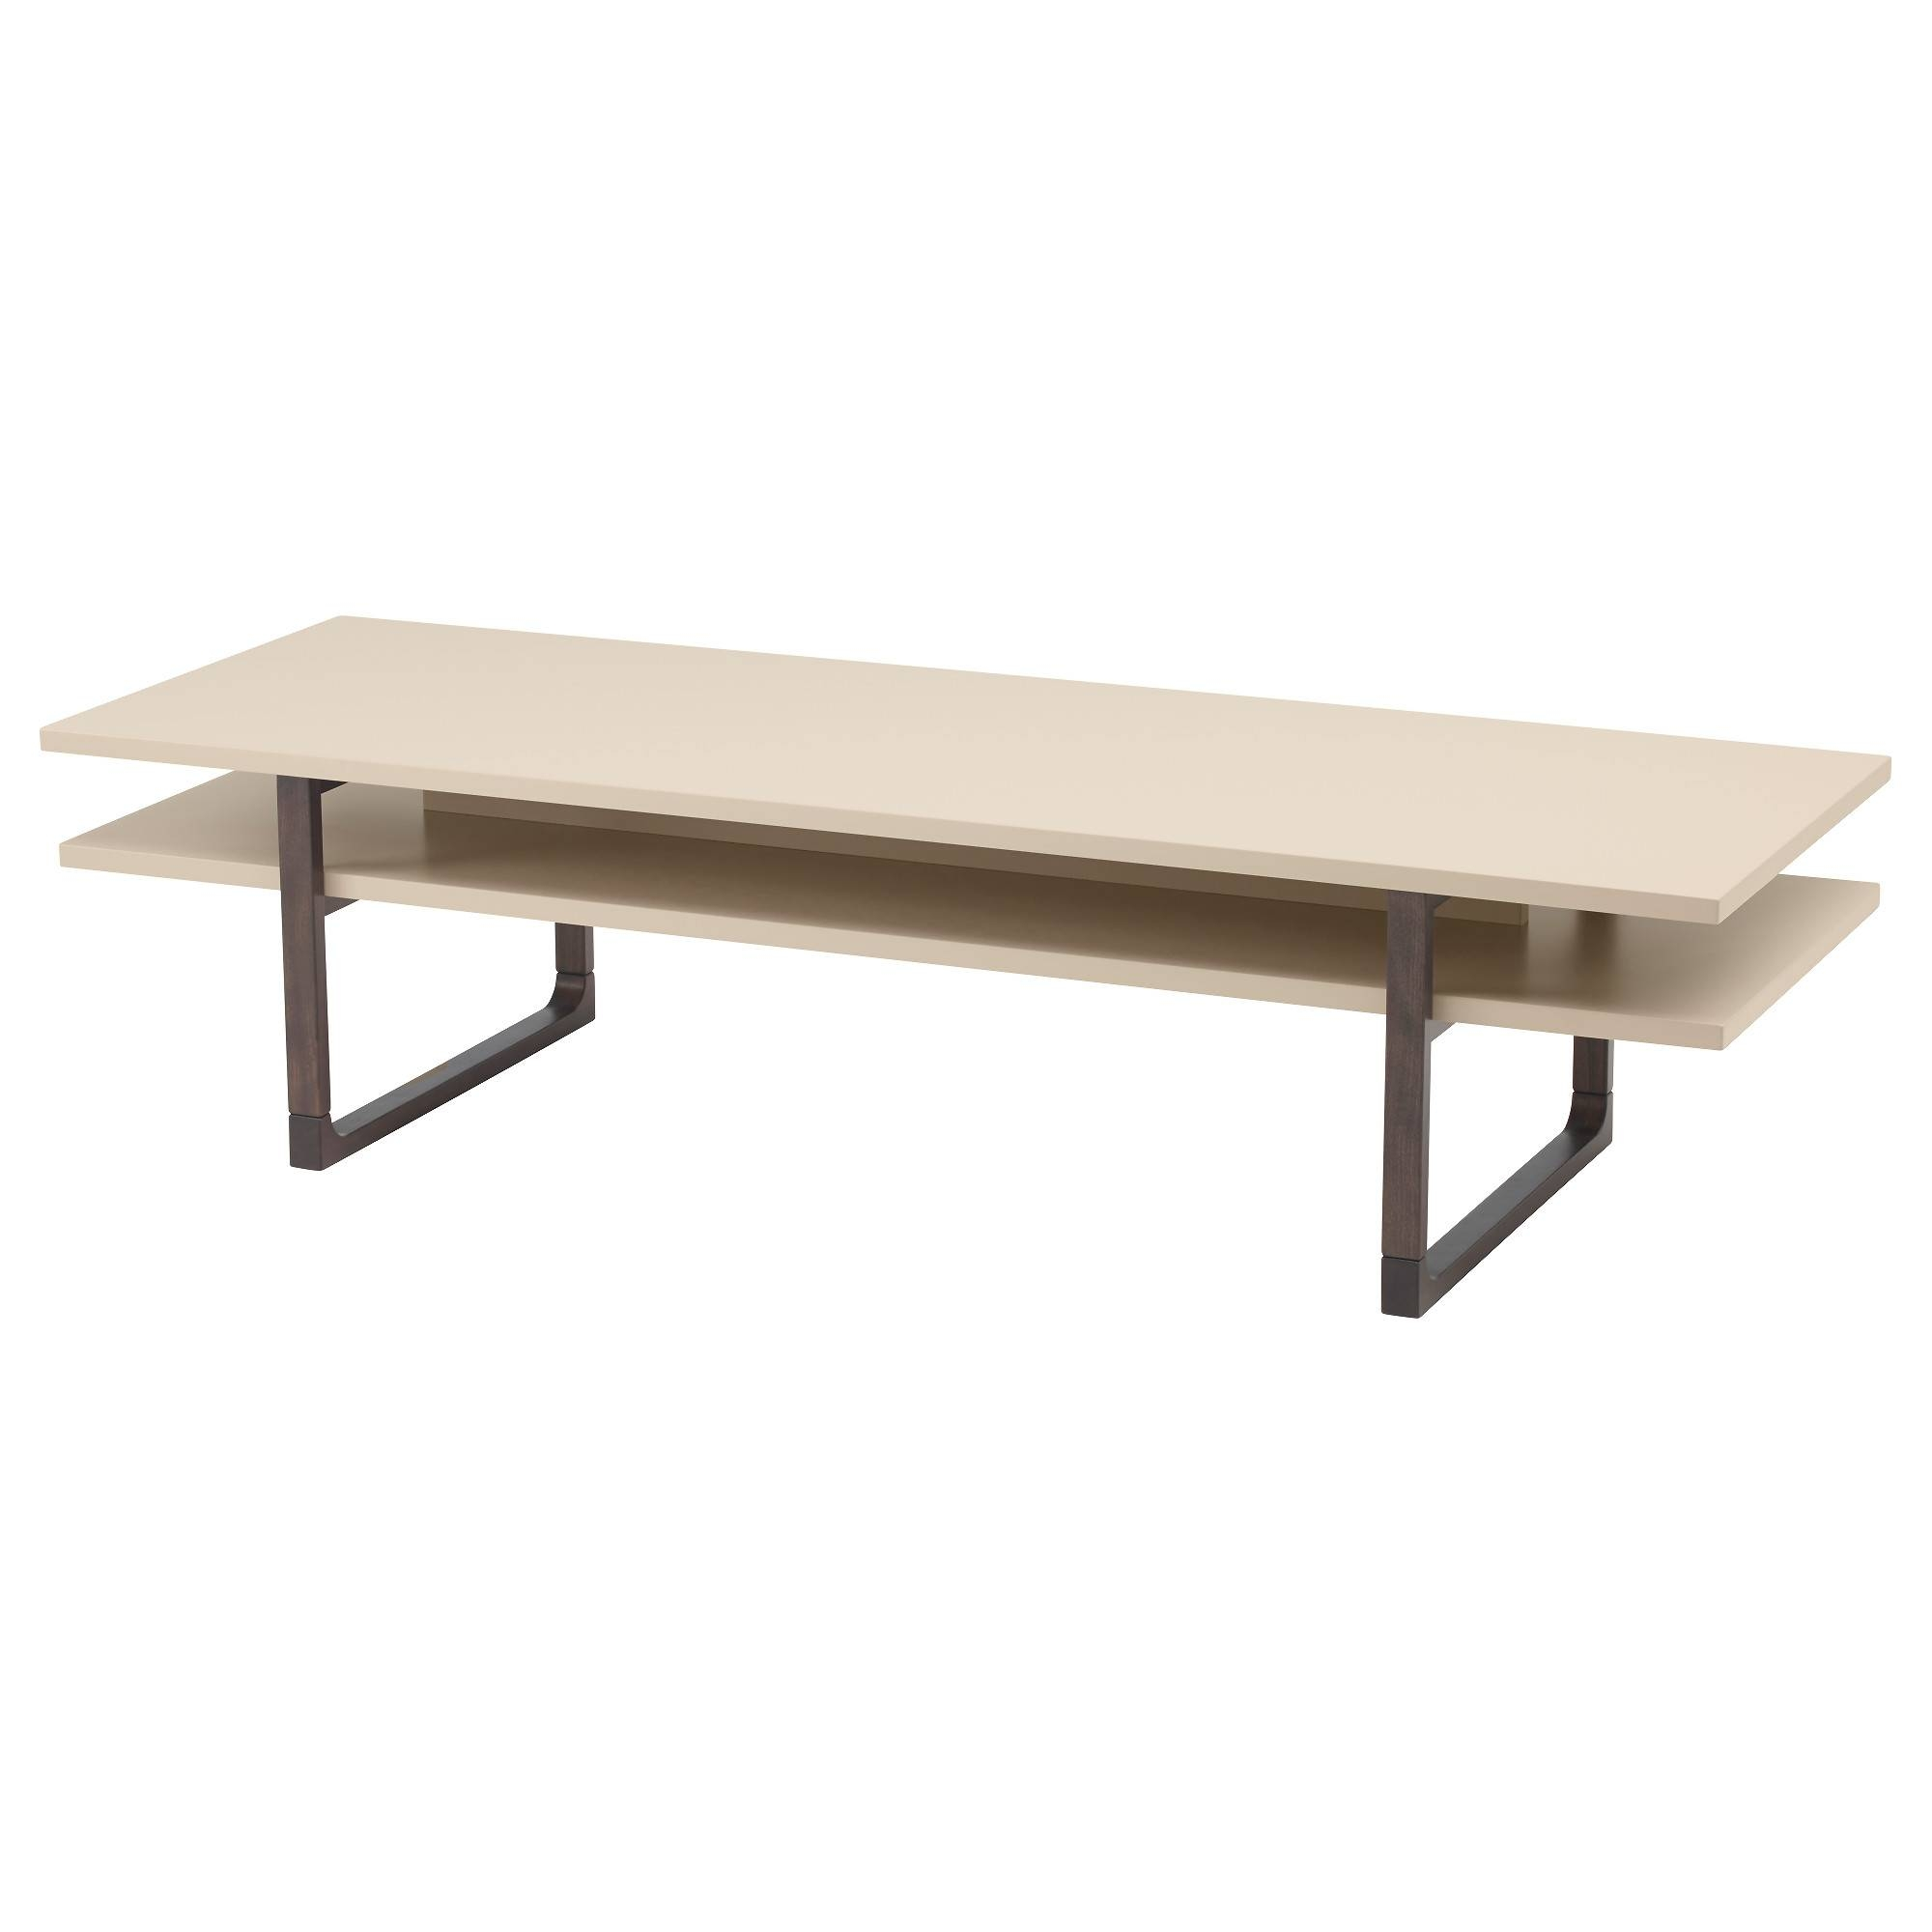 Coffee Tables & Console Tables - Ikea pertaining to Big Low Coffee Tables (Image 10 of 30)